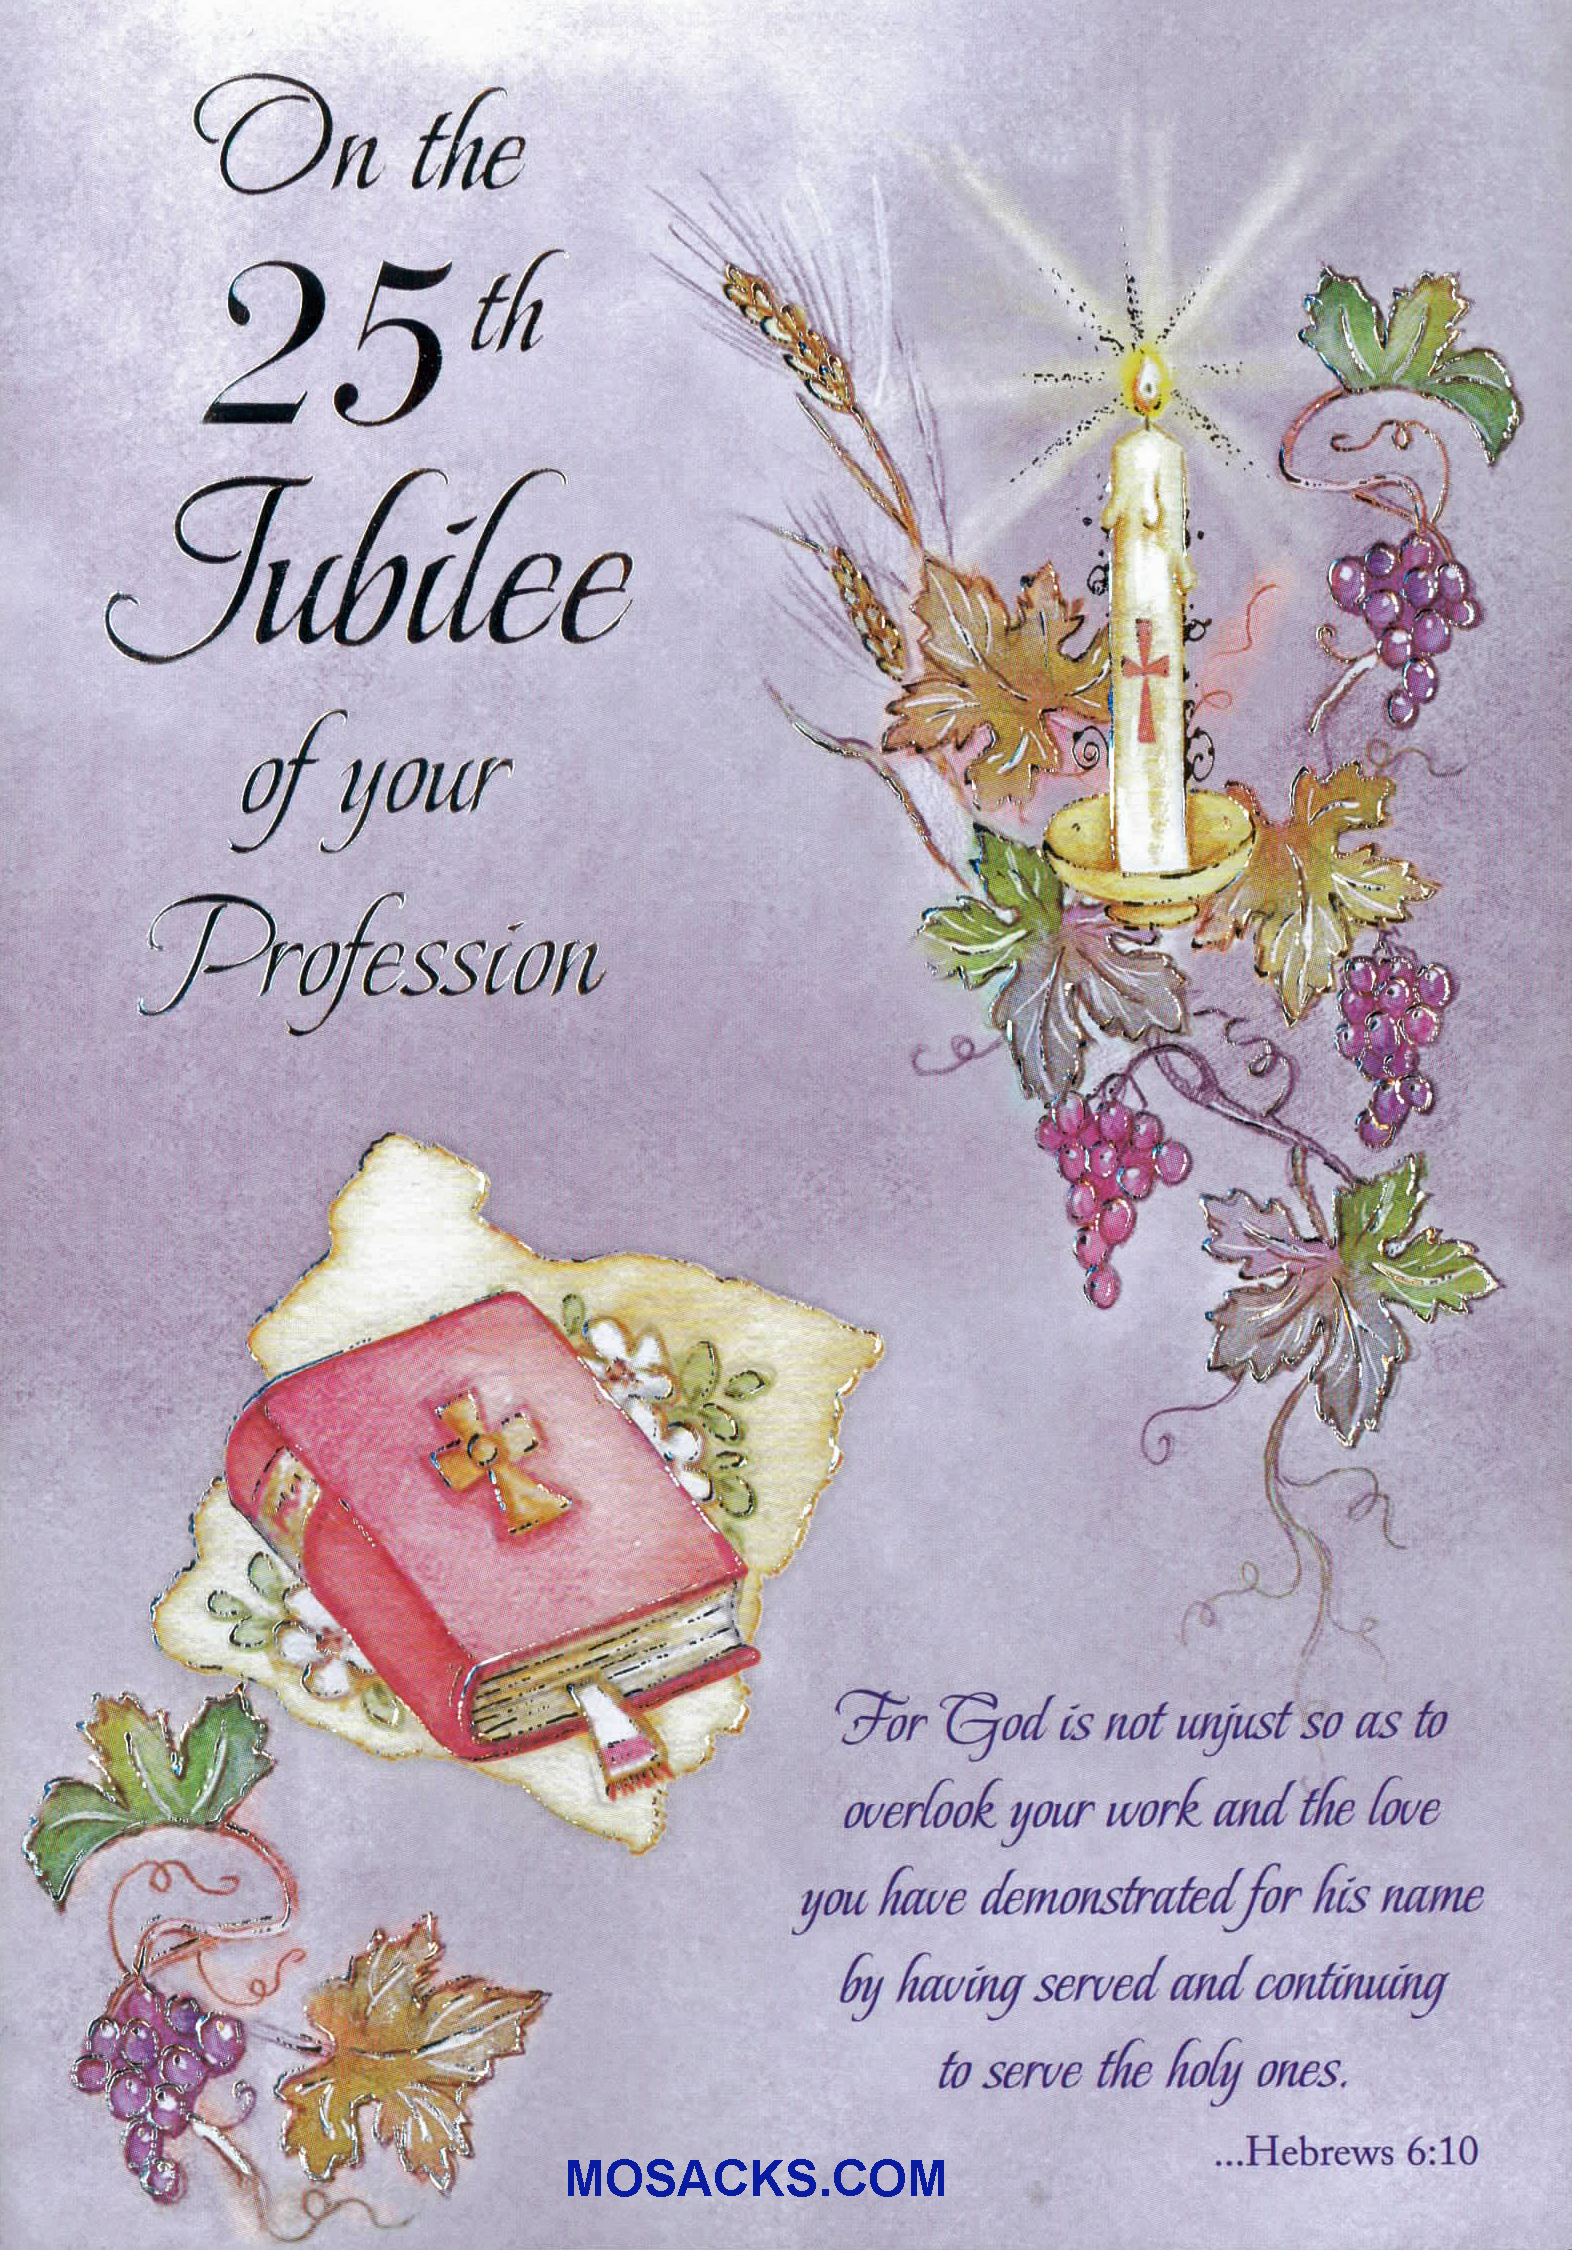 On the th jubilee of your profession greeting card